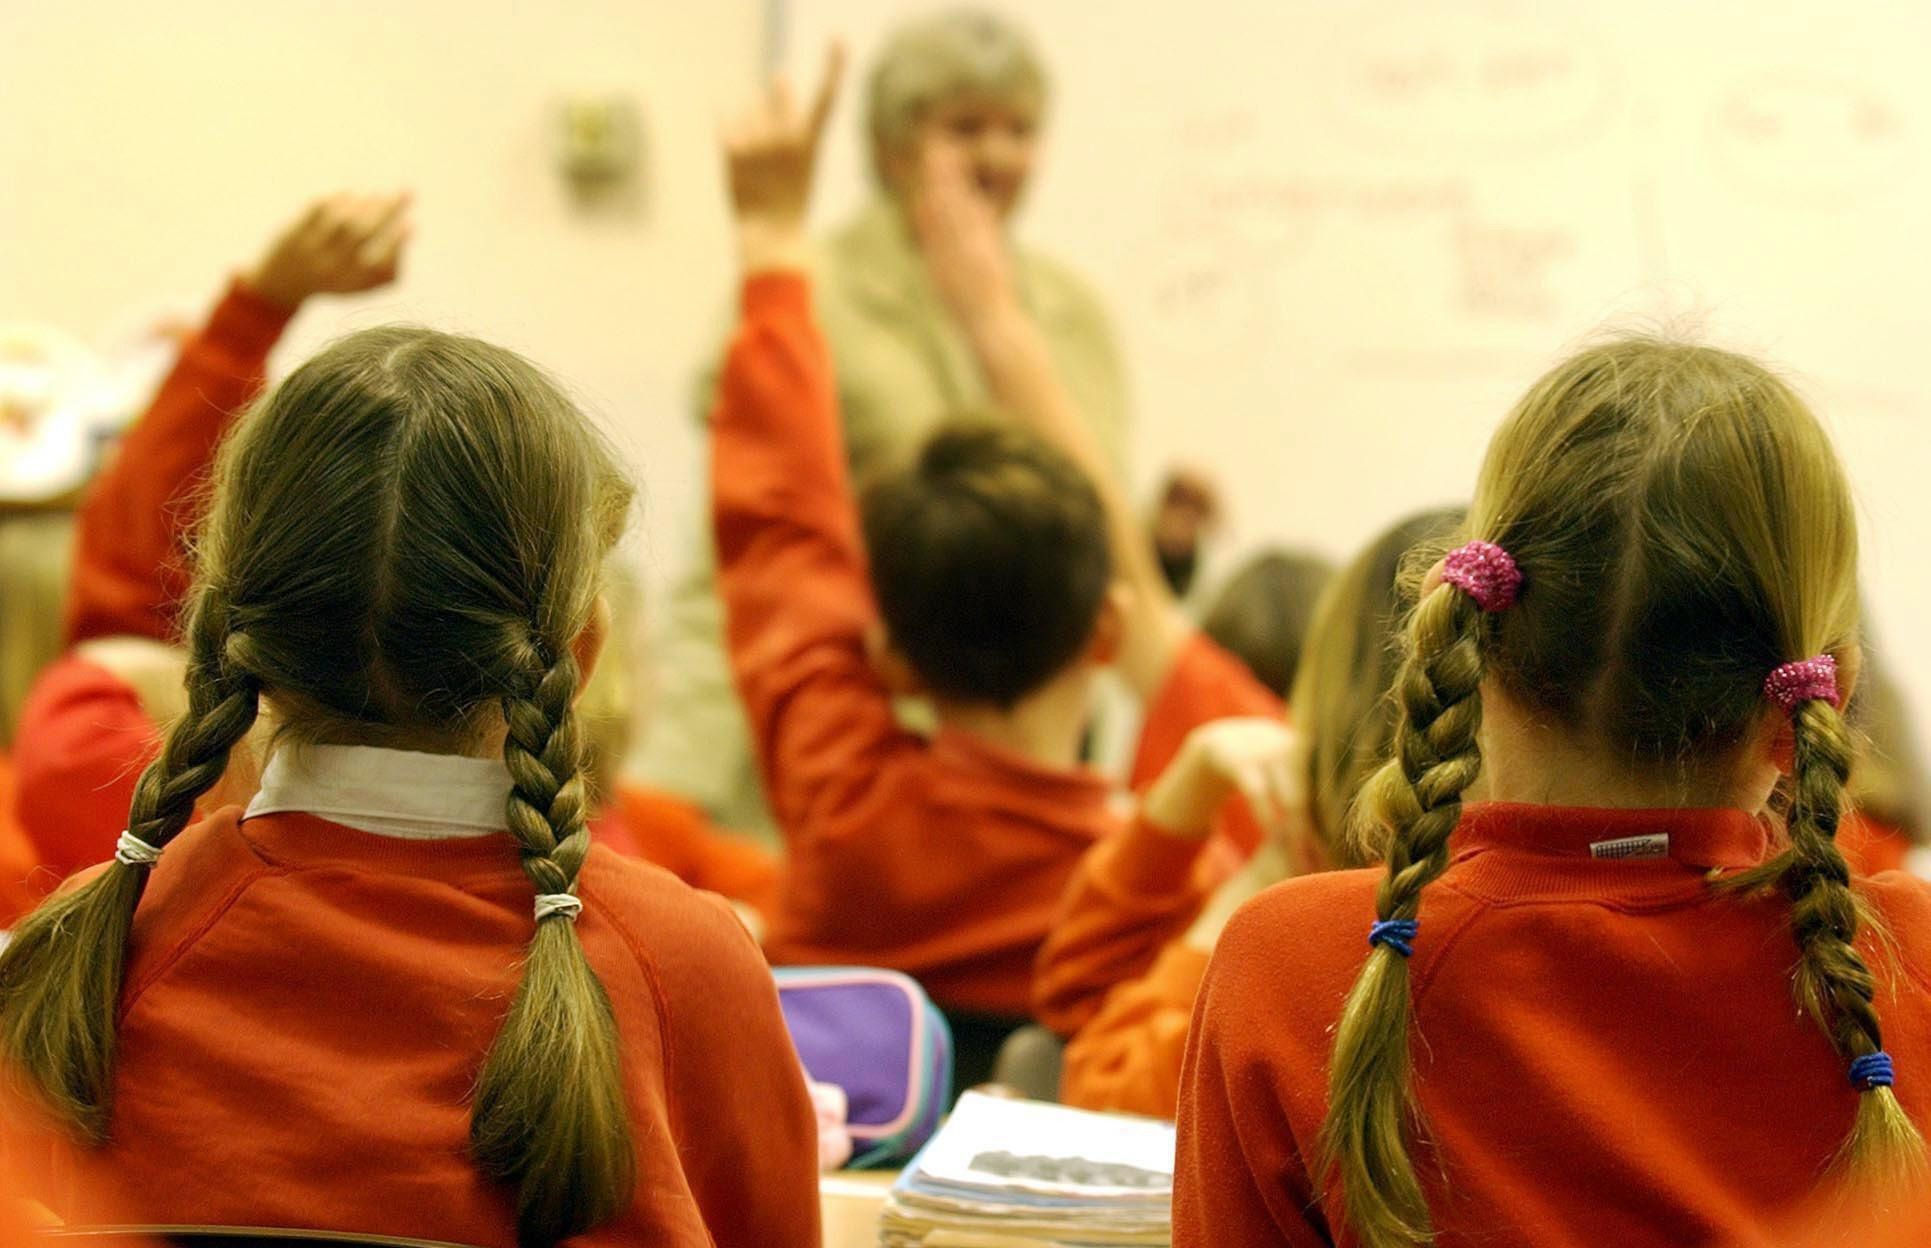 CRACKDOWN: More parents could face fines after threshold lowered